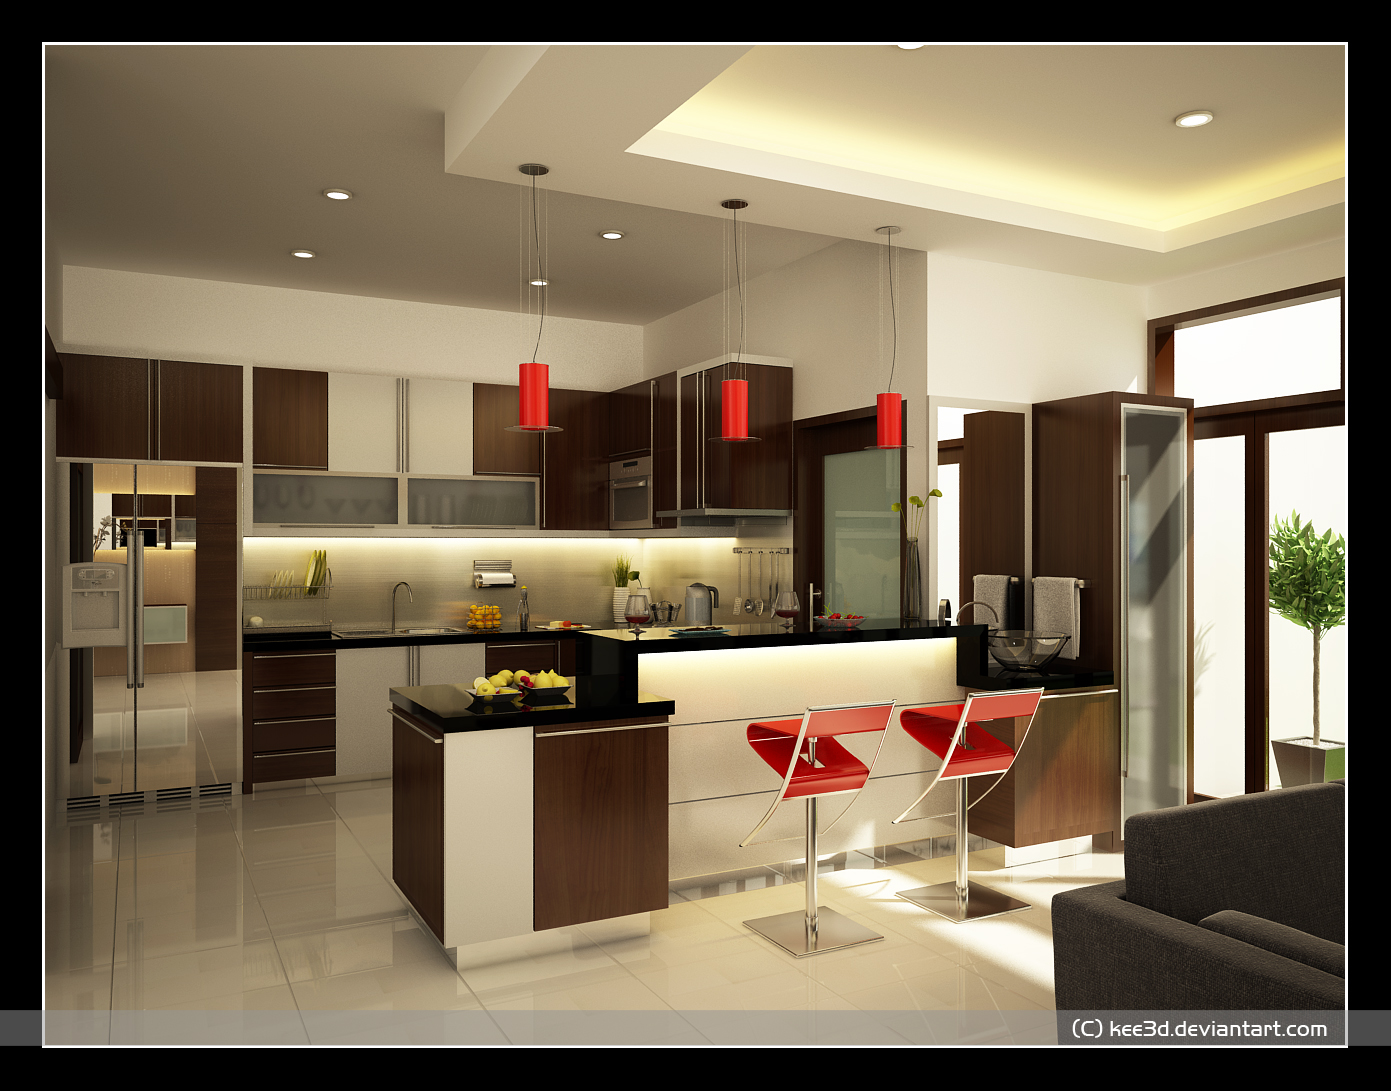 Kitchen design ideas for Kitchenette design ideas